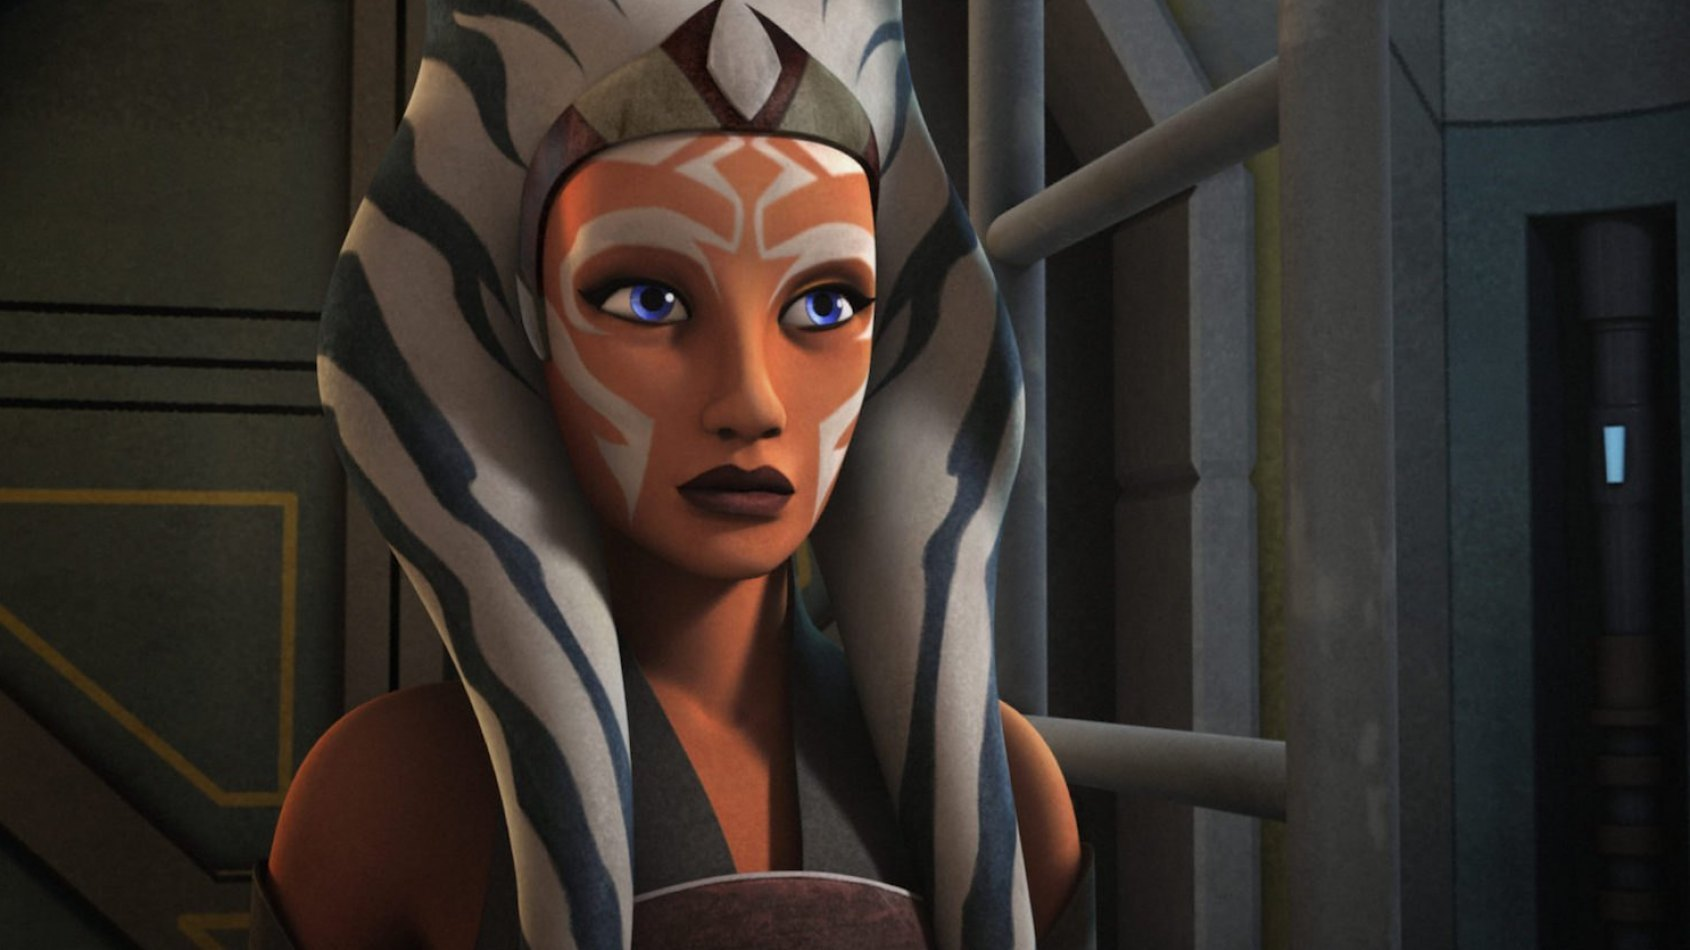 Star Wars Celebration-Jour 1: Panel sur Ahsoka Tano